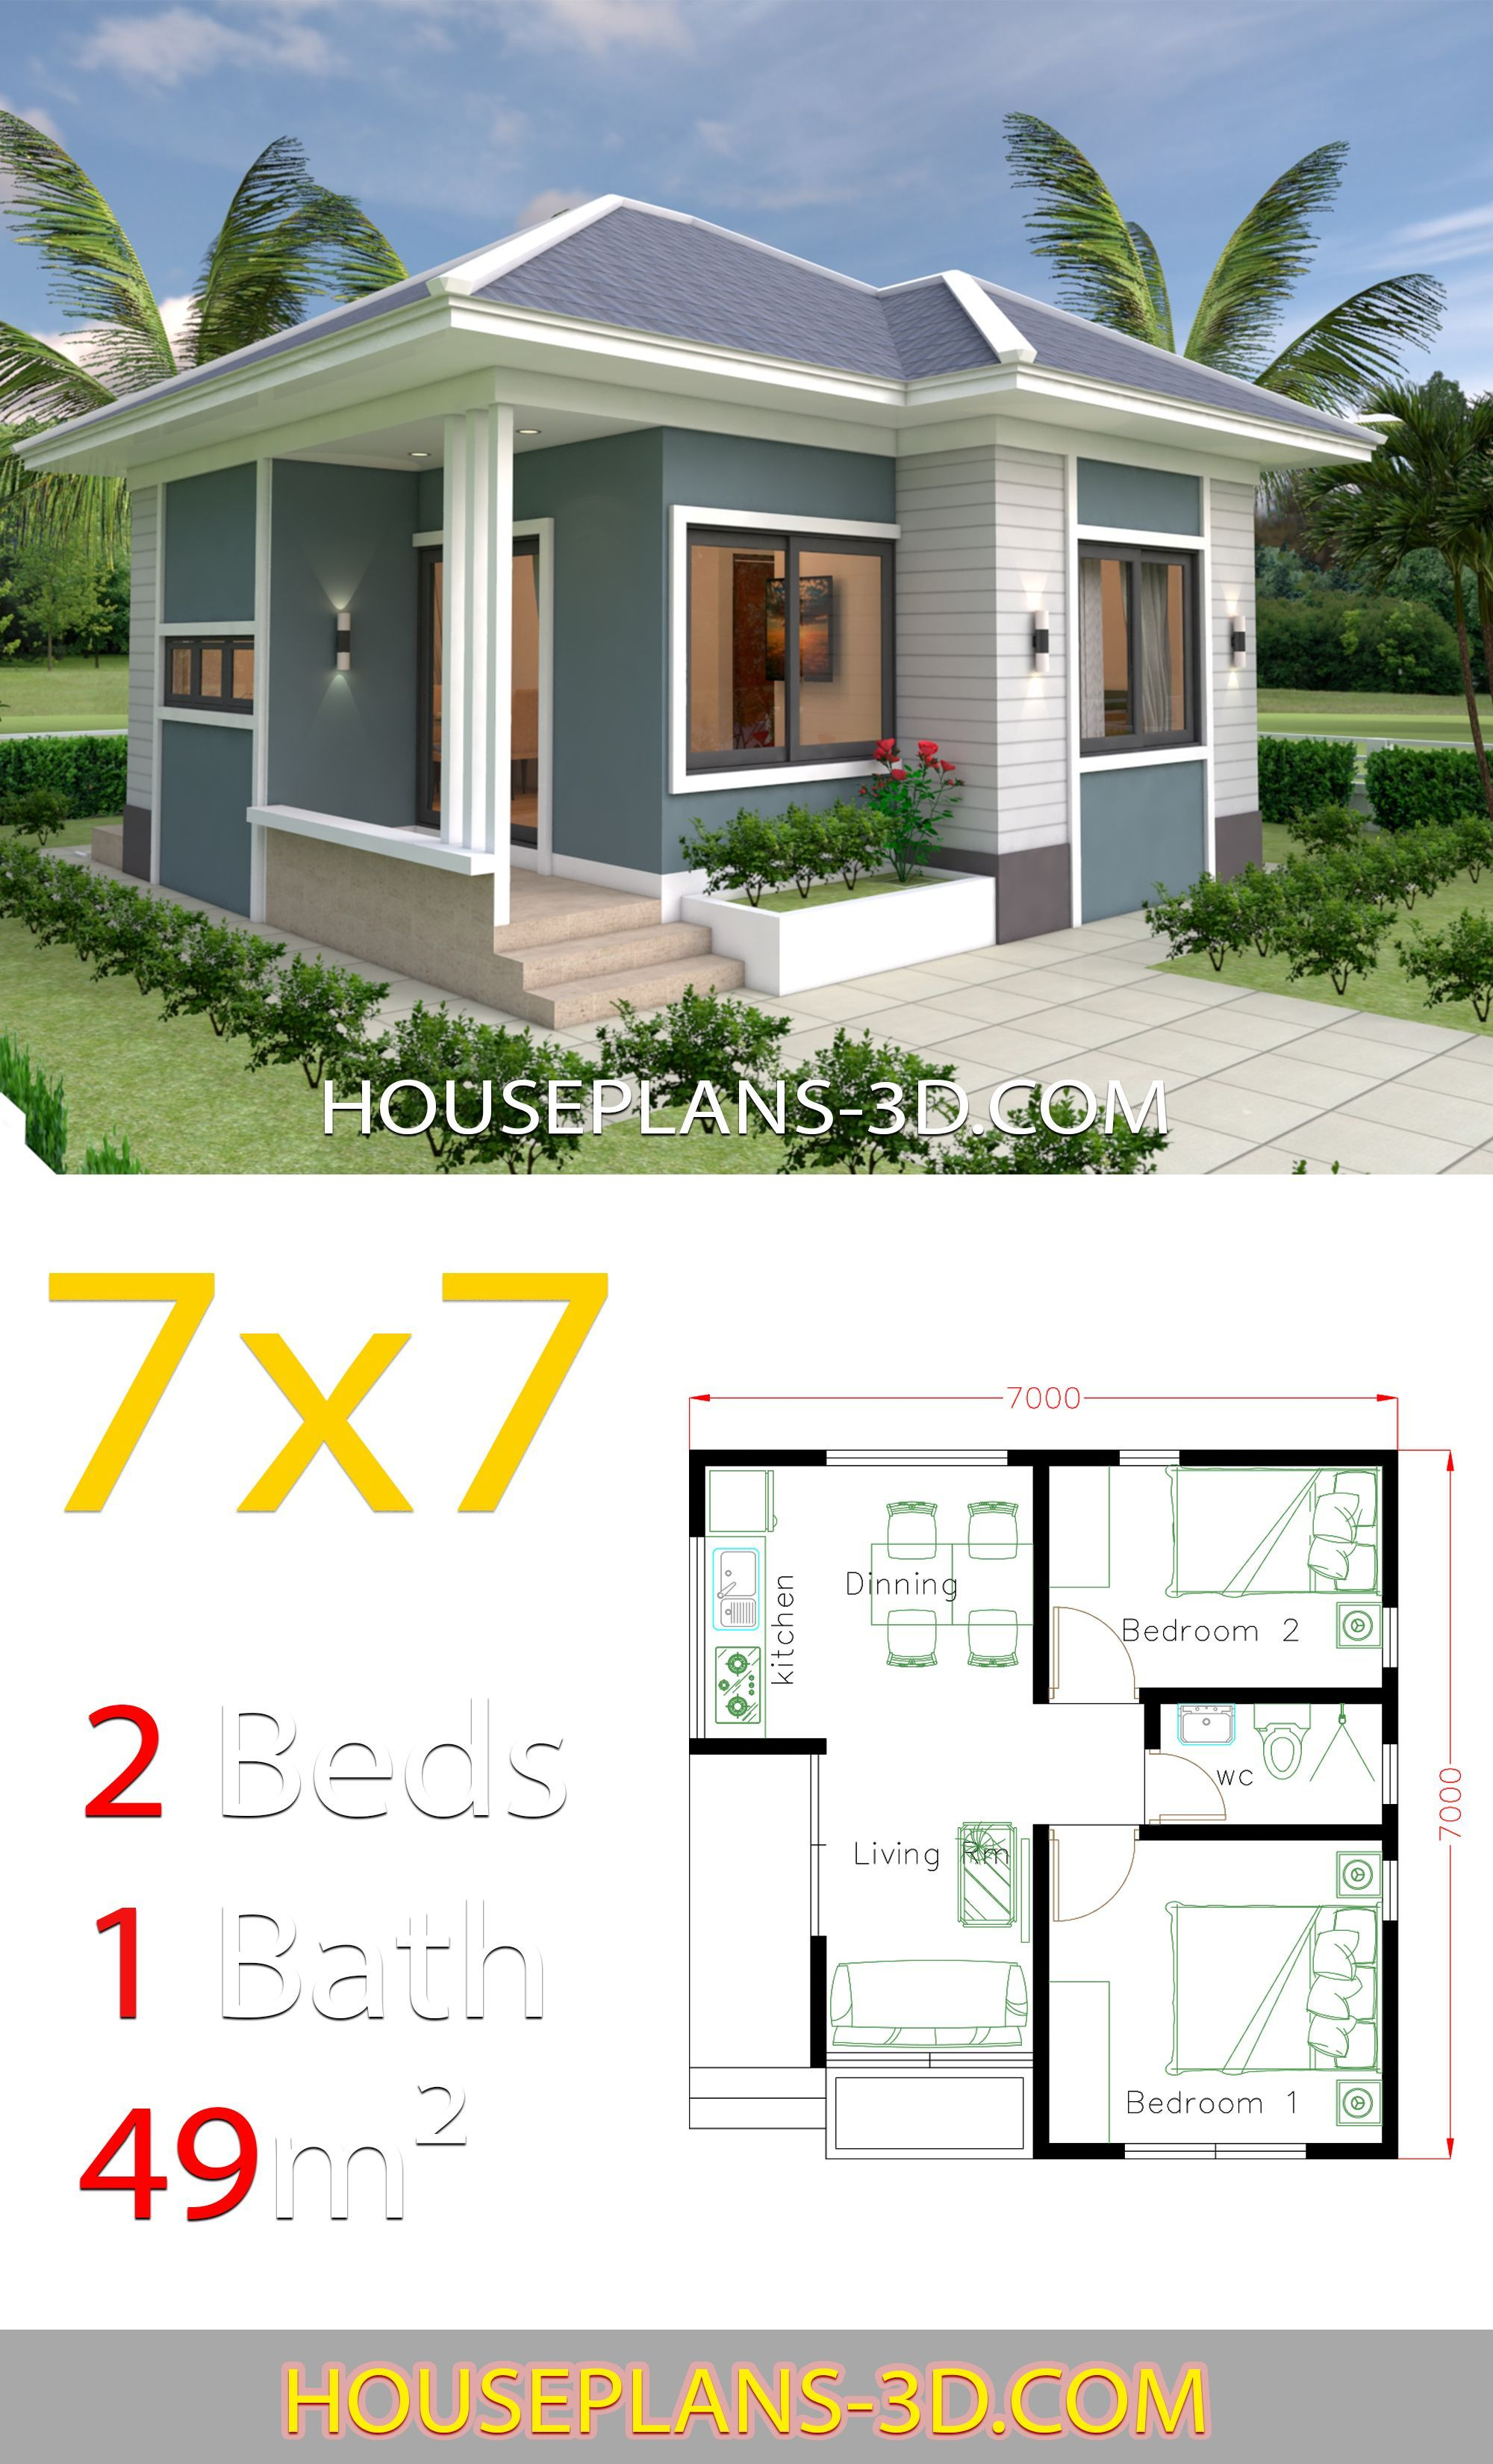 House Design 7x7 With 2 Bedrooms Full Plans House Plans 3d Small House Layout Small House Design Plans Small House Design